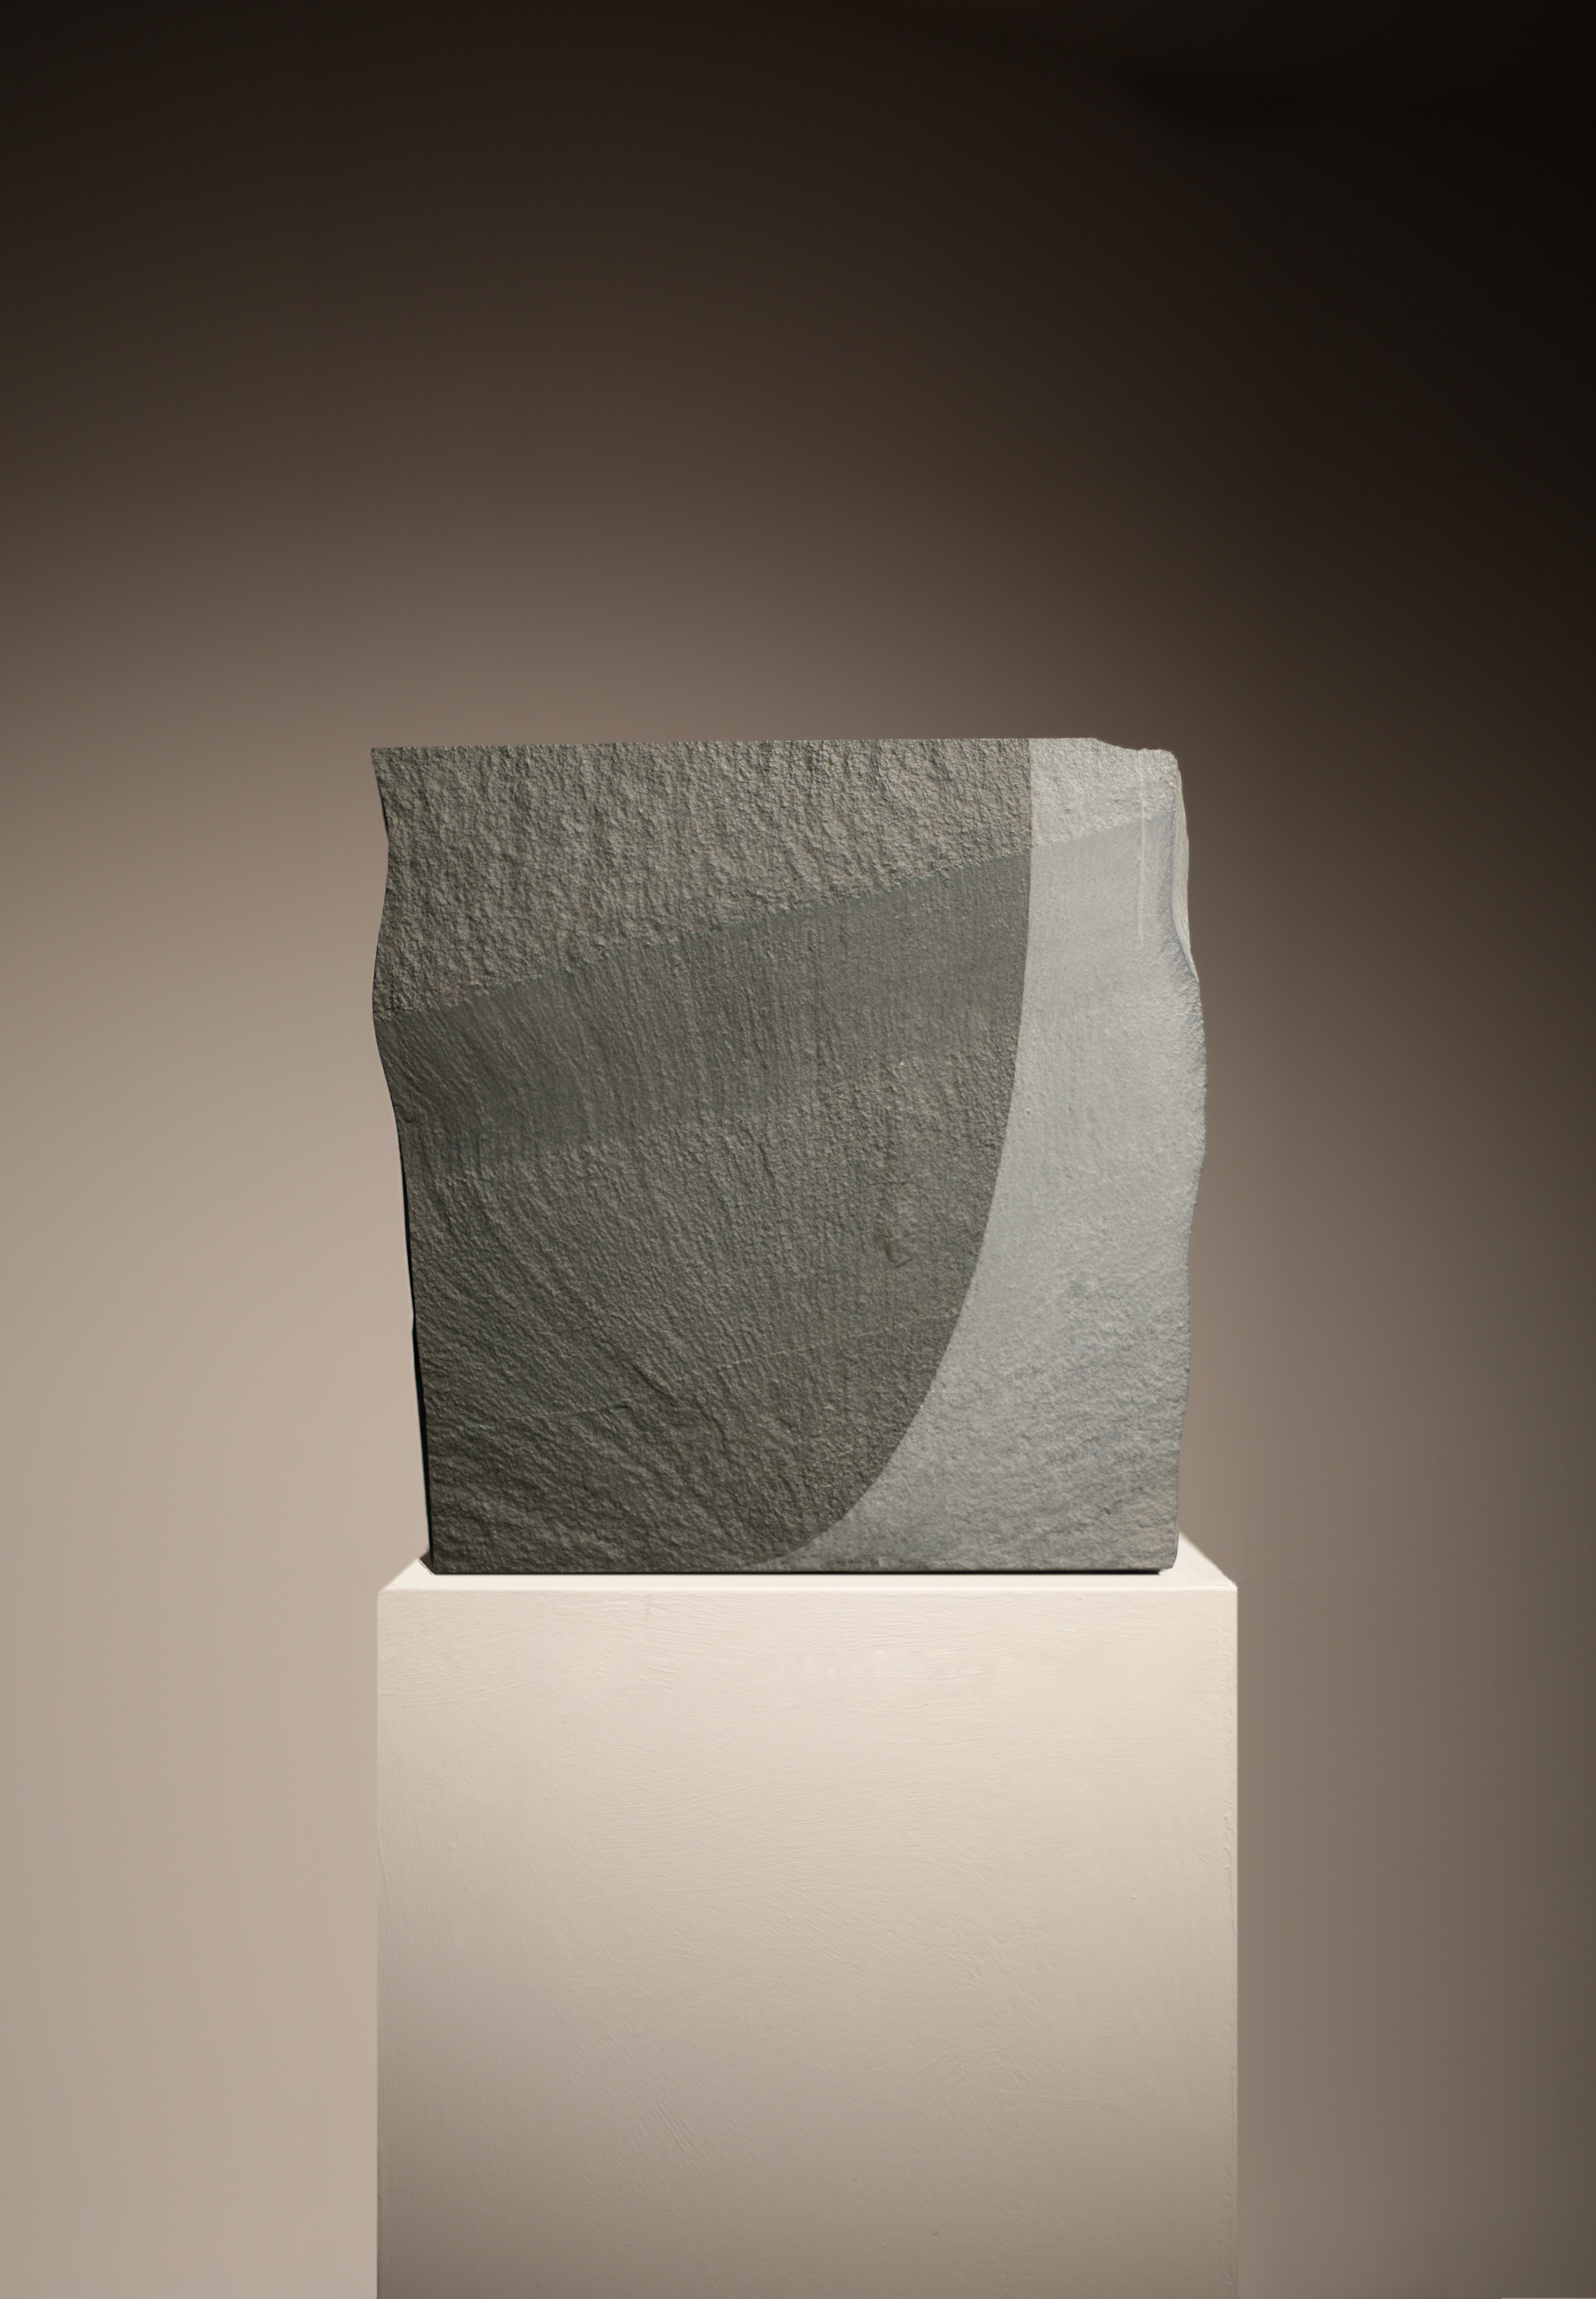 GATHERED BY EROSION (threshold with ripple) 2000, eroded Cumbrian slate, 34.7 x 34.7 x 4.7 cm